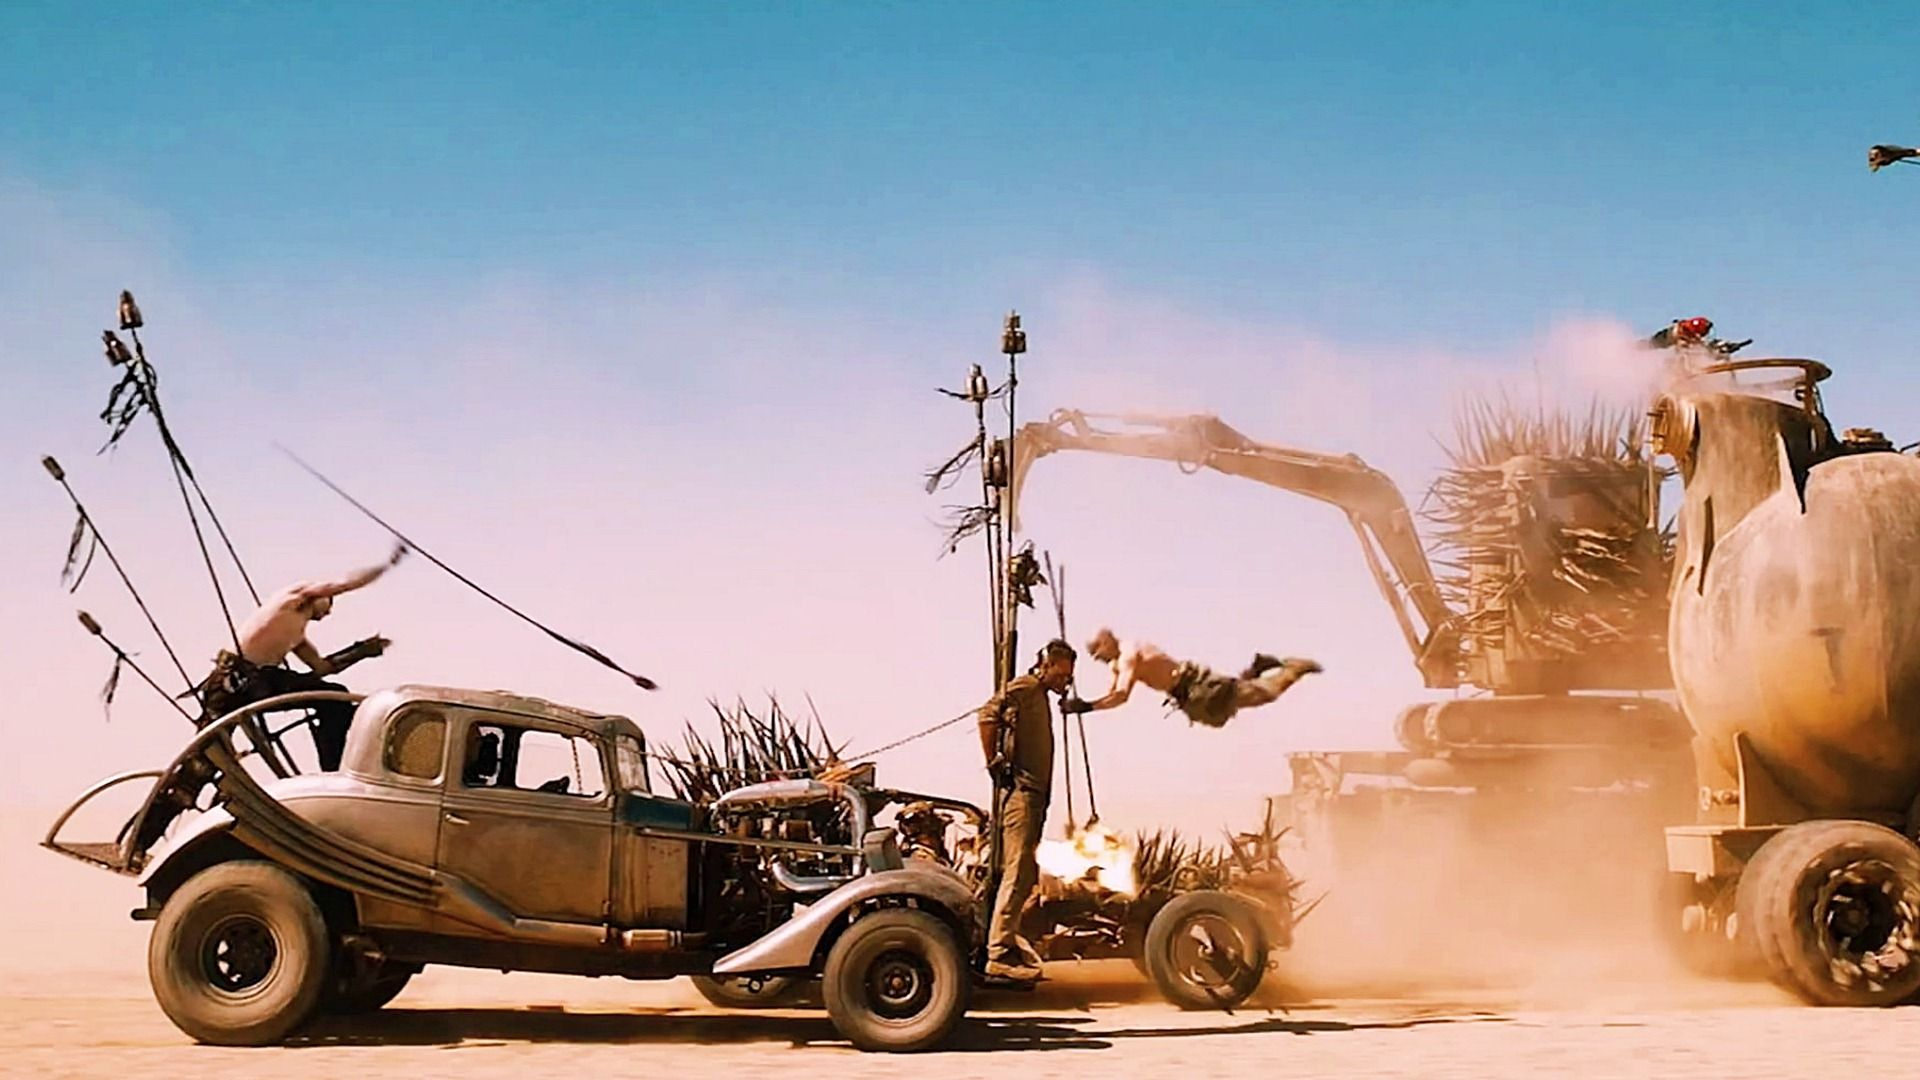 Mad Max 4K Wallpapers - Top Free Mad Max 4K Backgrounds ...